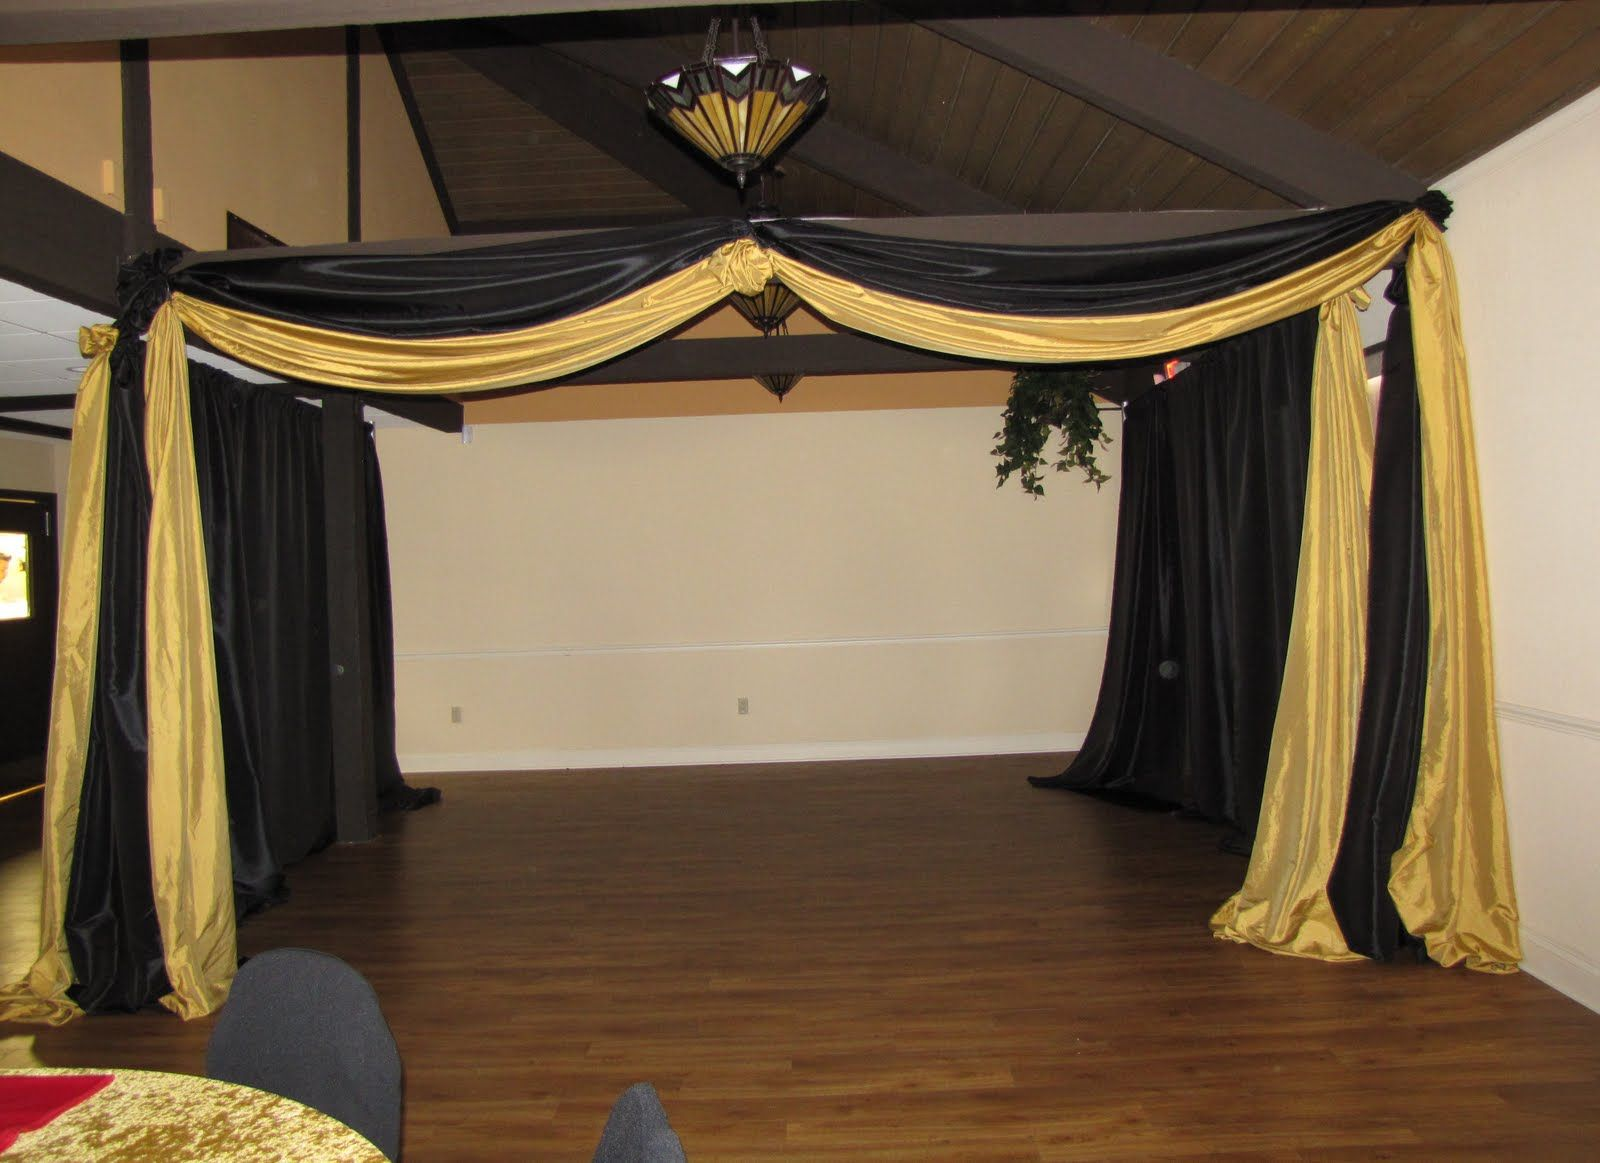 Cheap black stage curtains - Afbeeldingsresultaat Voor Black And Gold Party Decorations